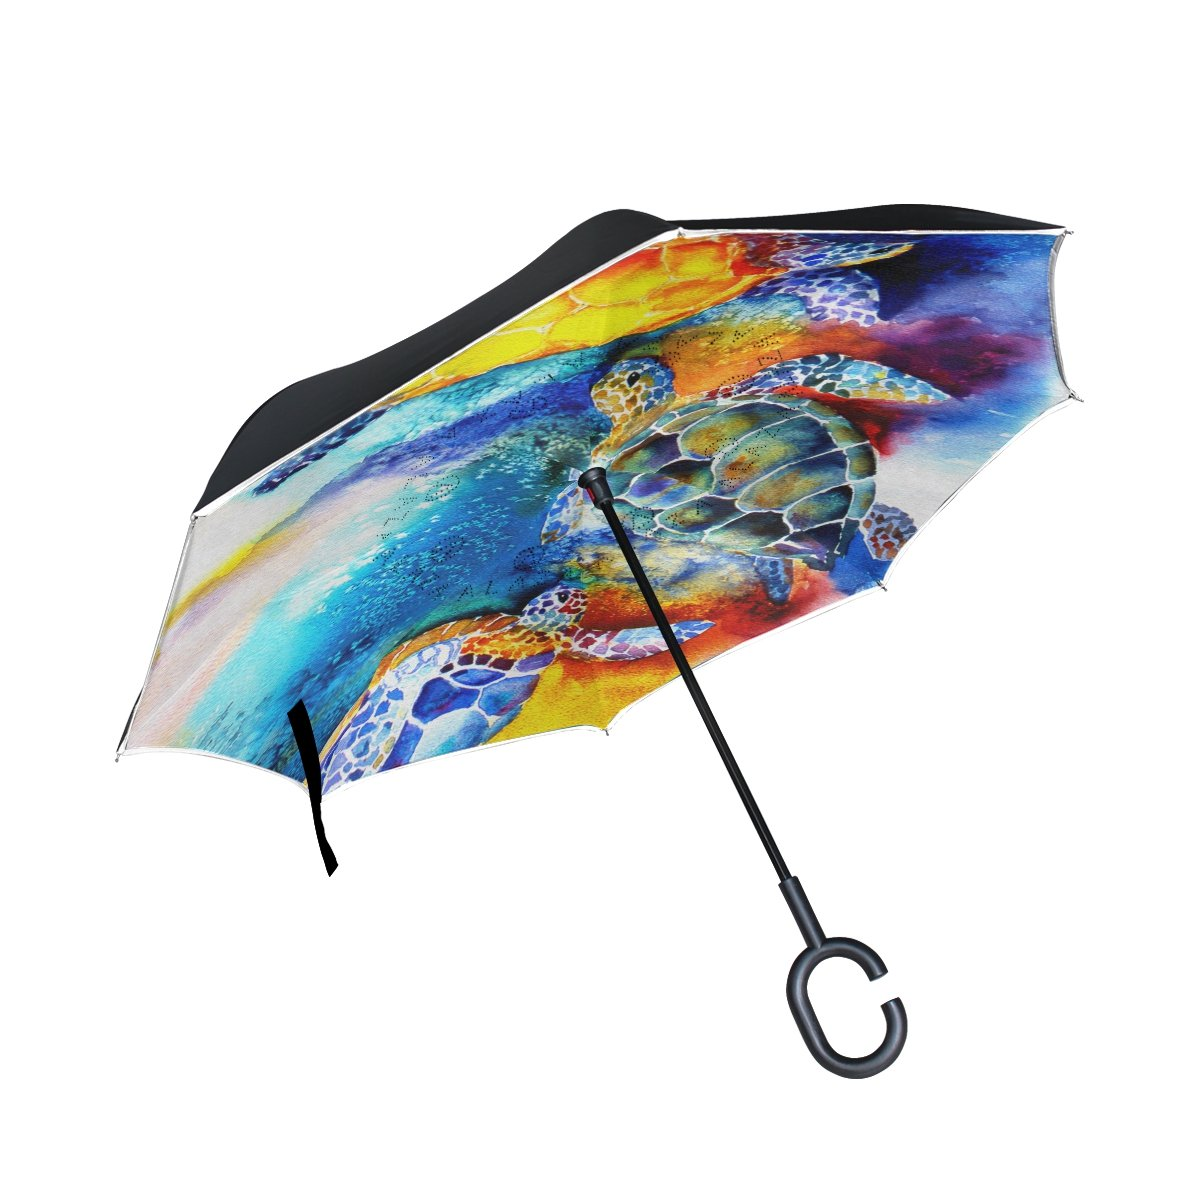 ALAZA Sea Turtle Ocean Inverted Umbrella Double Layer Windproof Reverse Folding Umbrella for Car With C-Shape Handle   B076CF8B8W